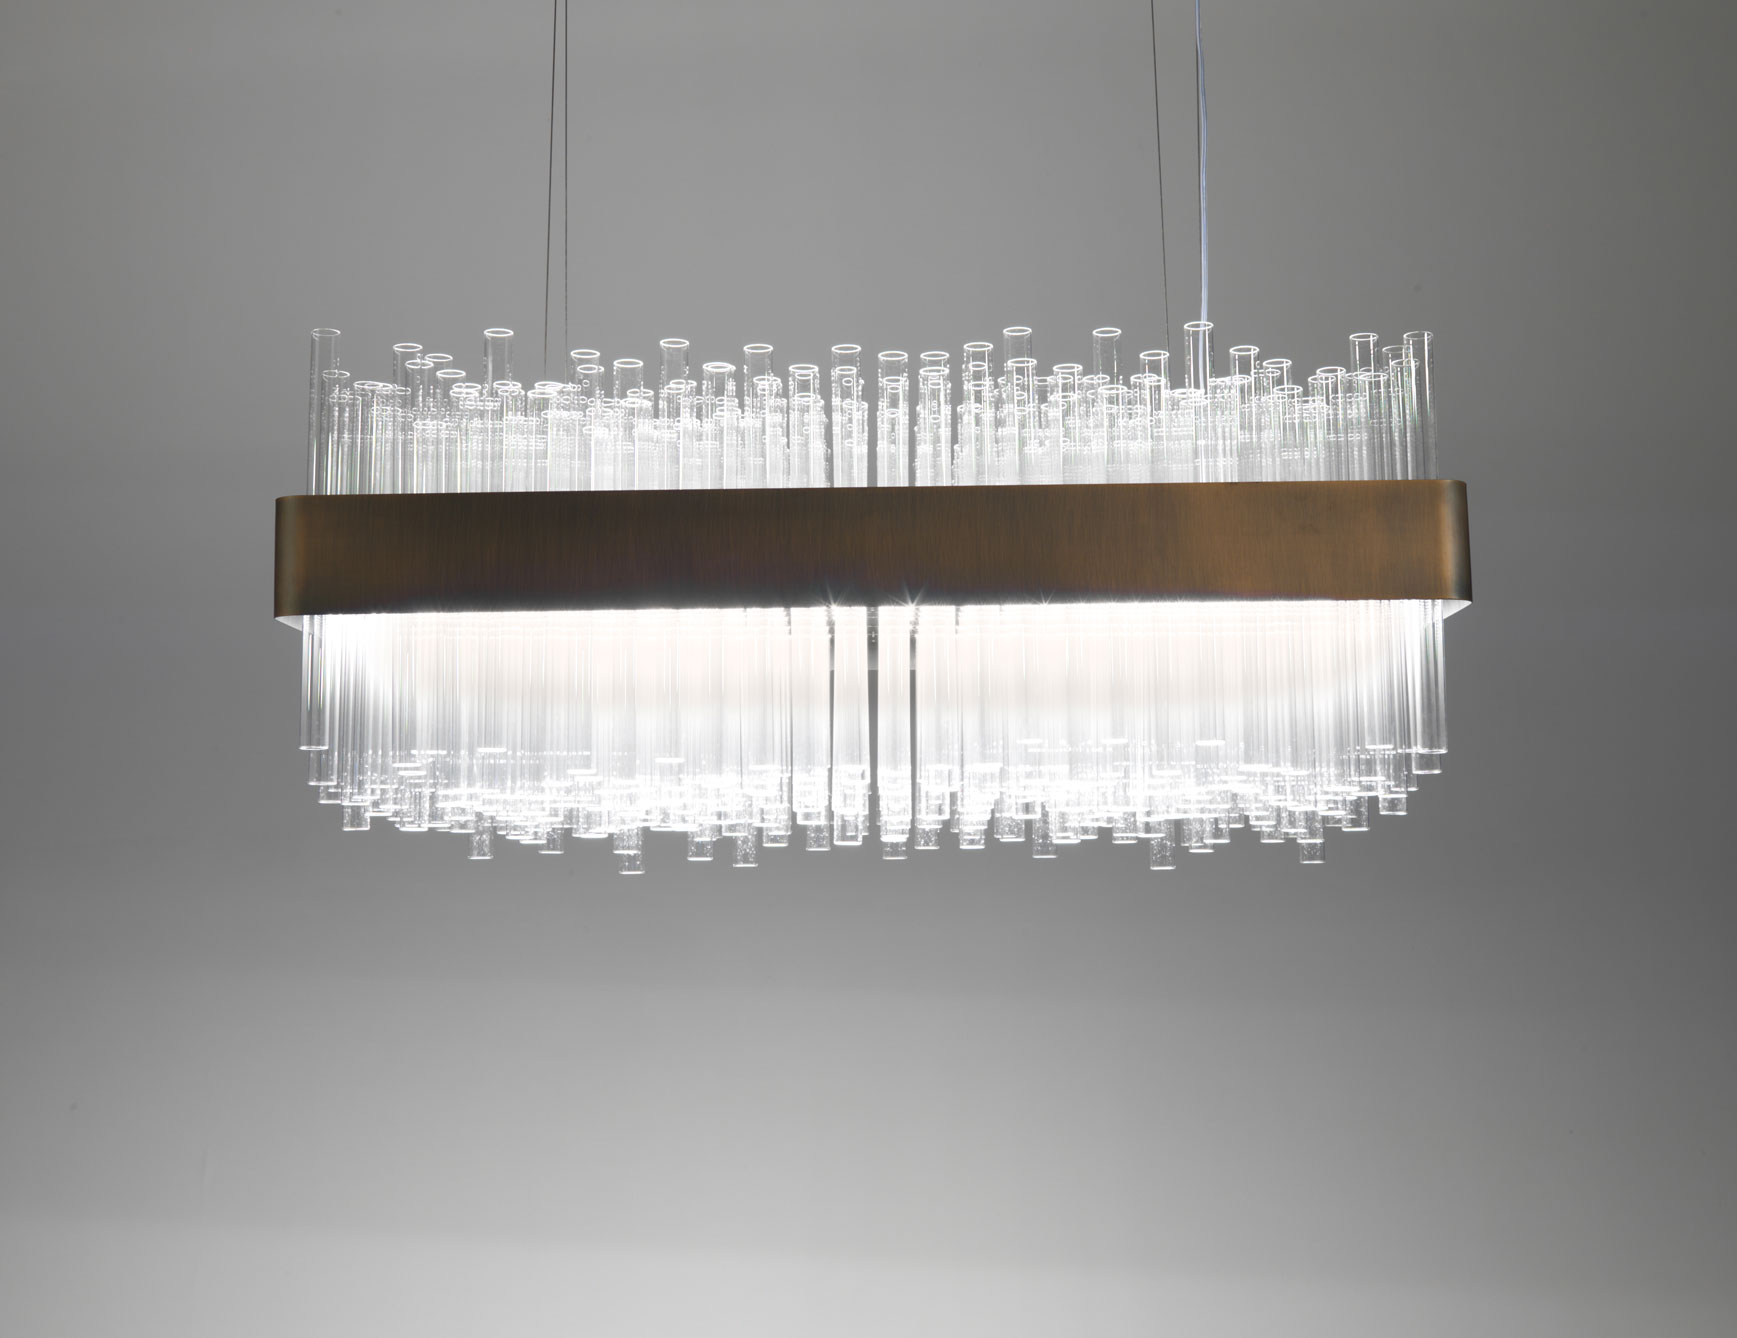 suspension lighting Give your home a fresh look with contemporary suspension lighting Give your home a fresh look with contemporary suspension lighting